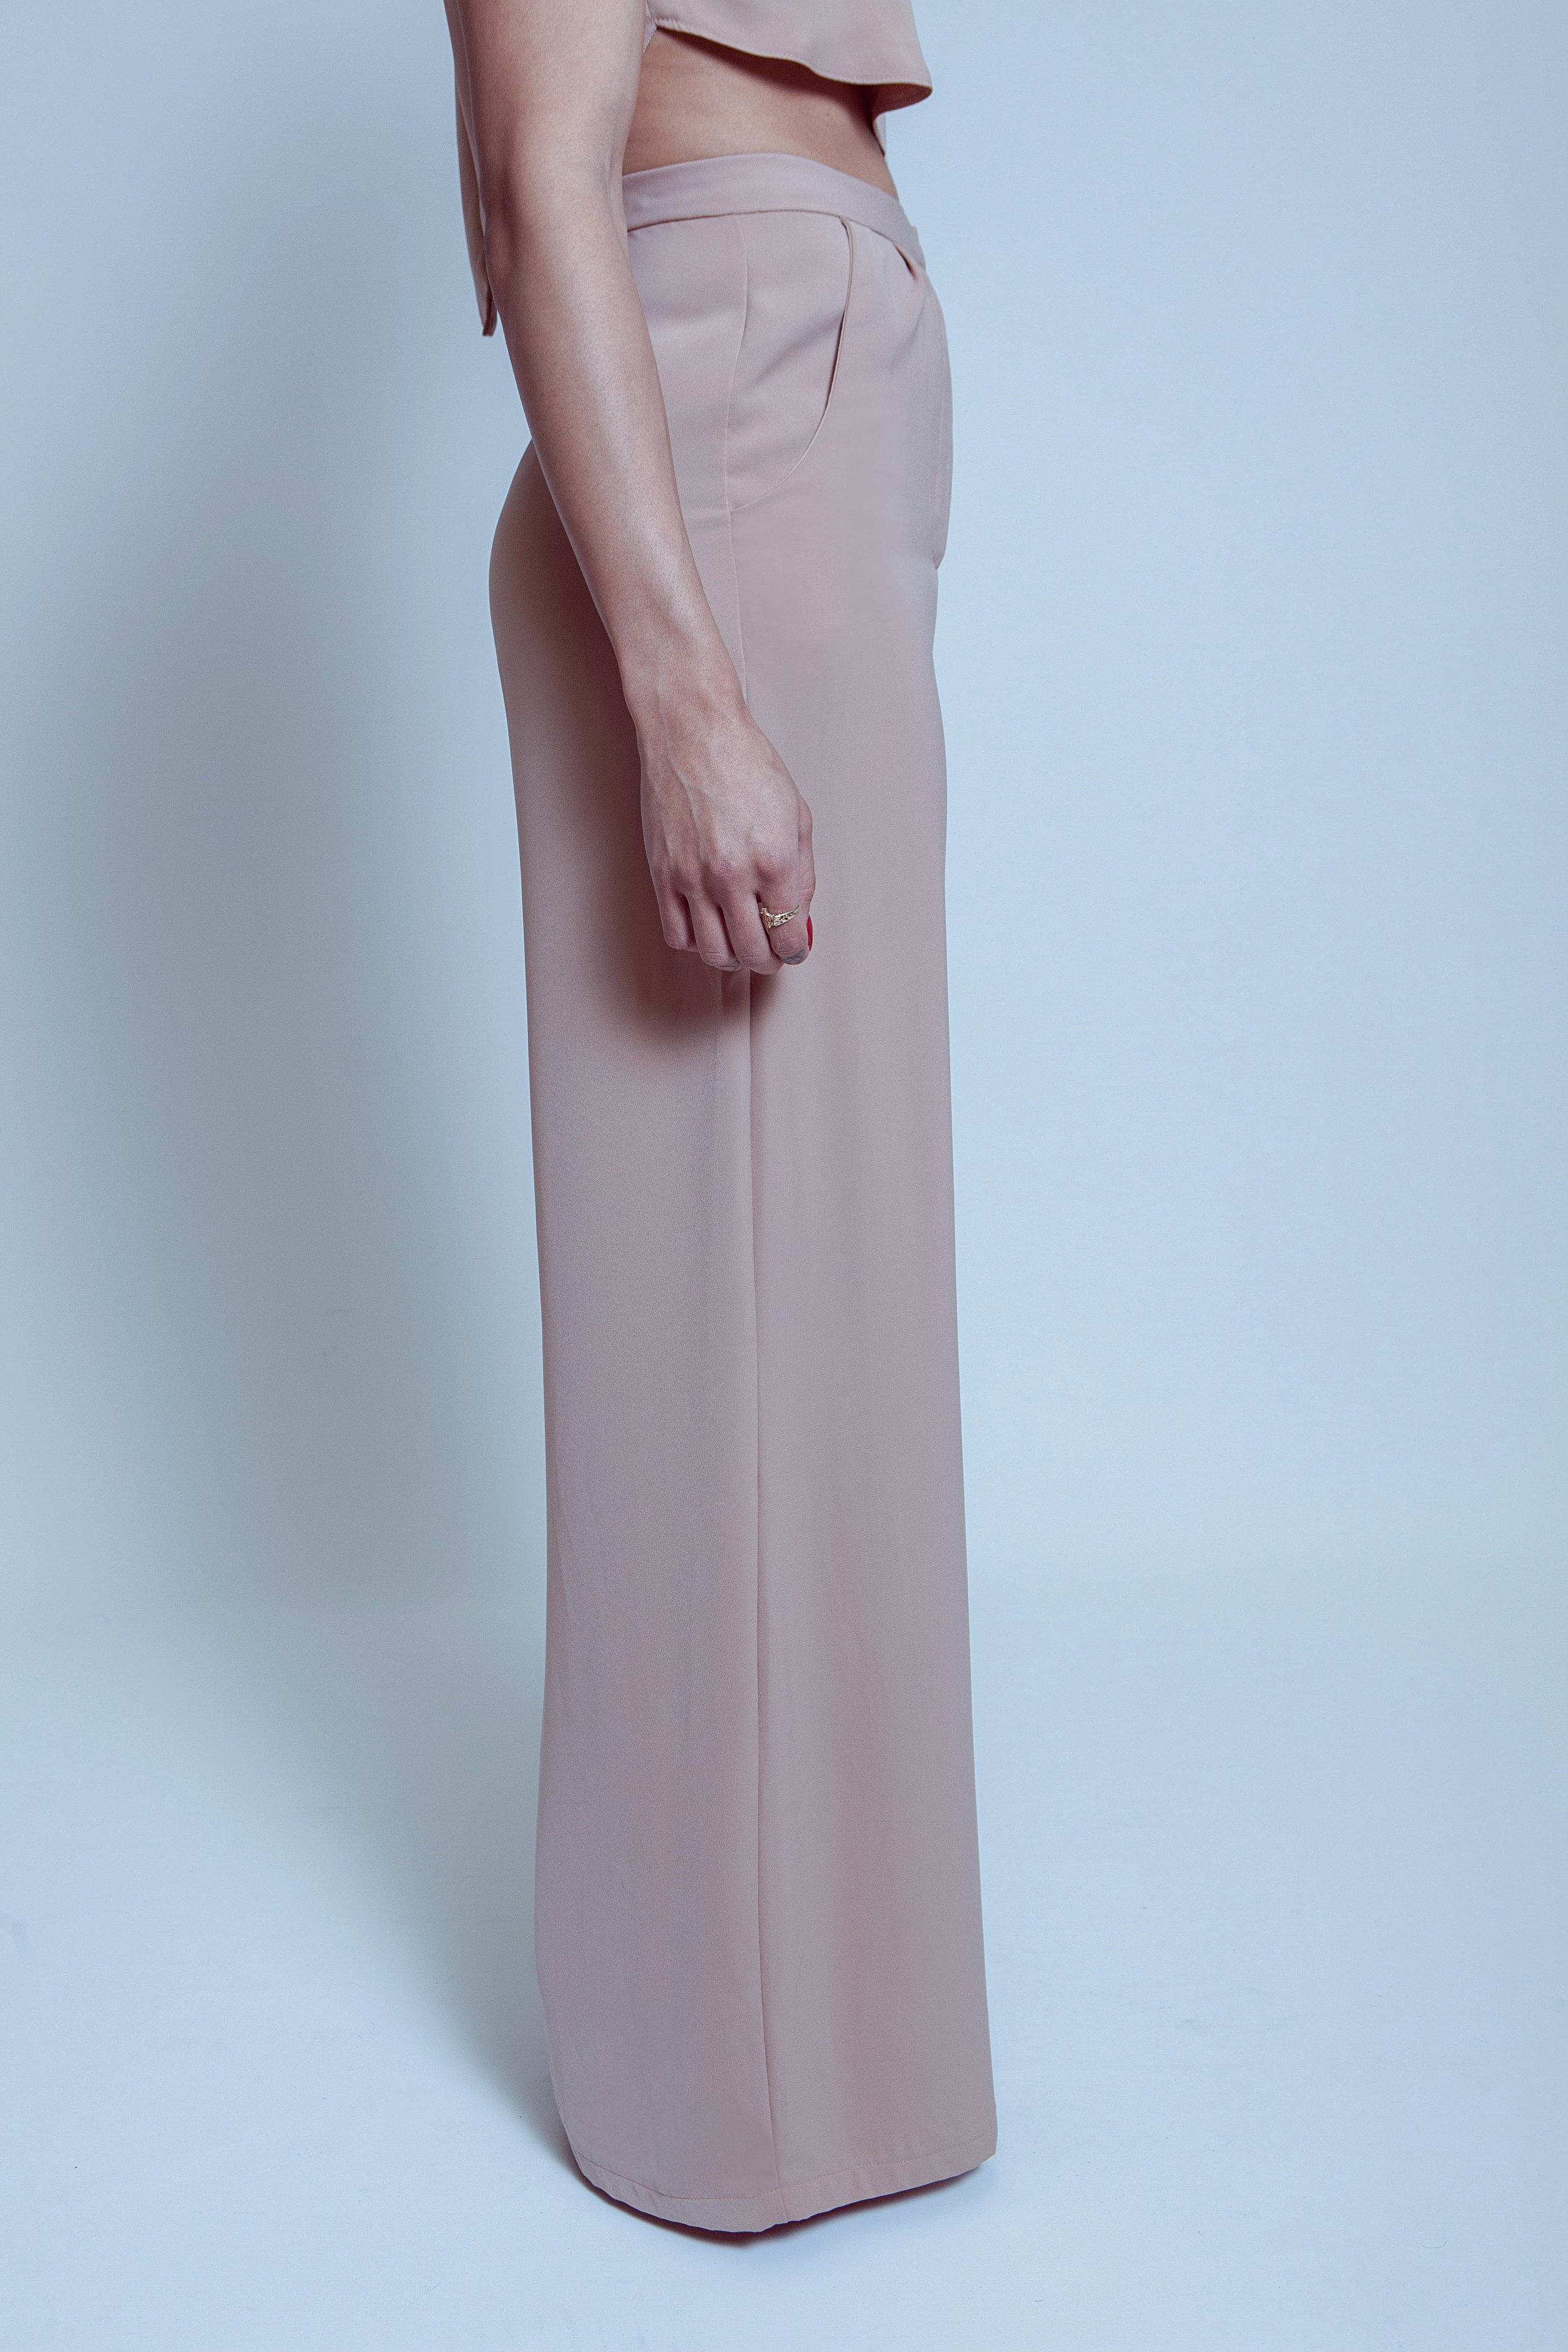 Easily Chic Pants - Simply Stunning...